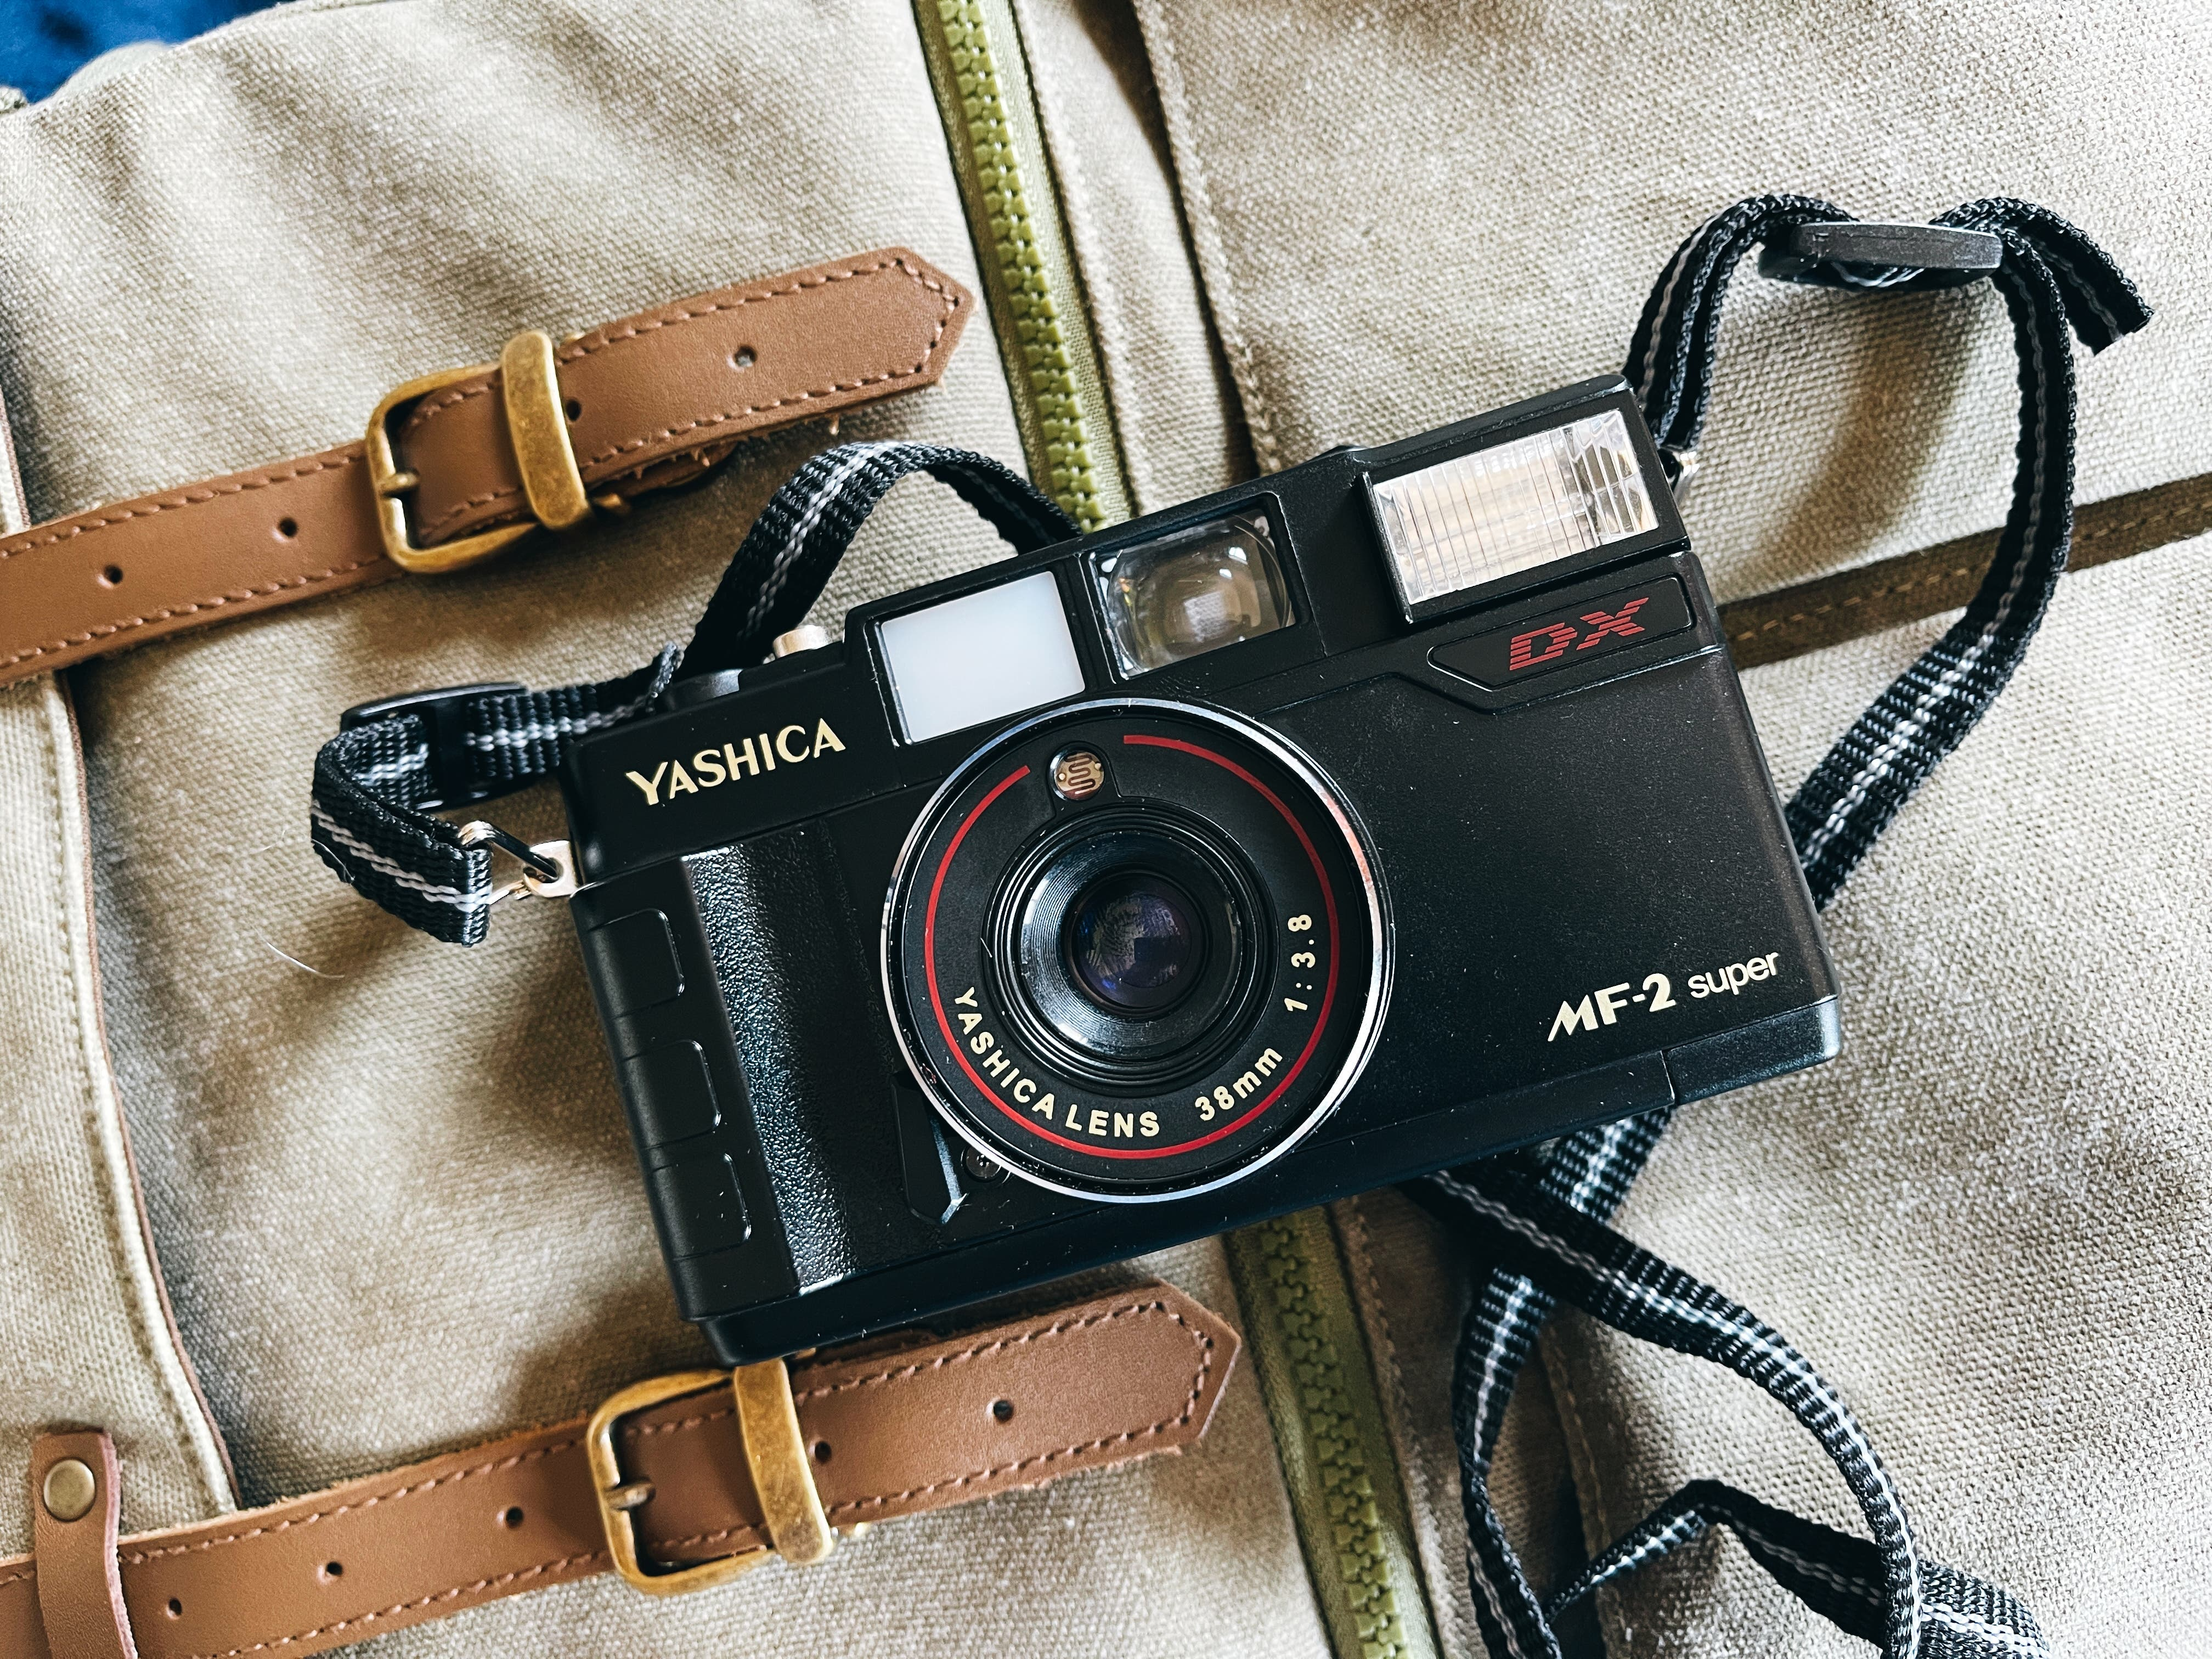 The Worst Camera We've Ever Tested. Yashica MF-2 Super DX Review